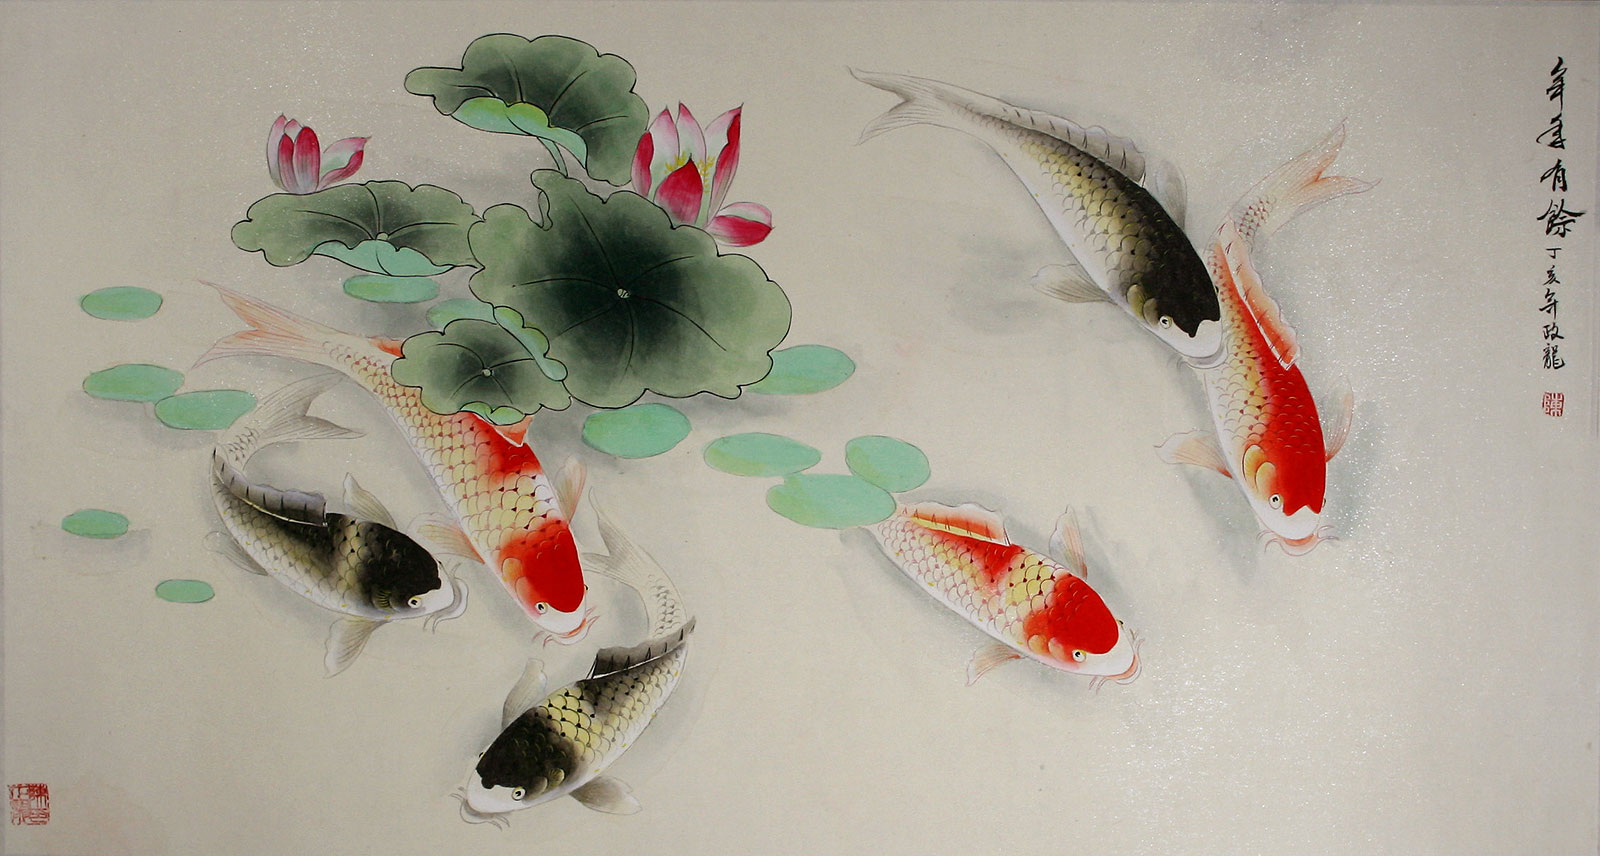 Chinese koi fish watercolor artwork asian koi fish for Japanese koi fish artwork